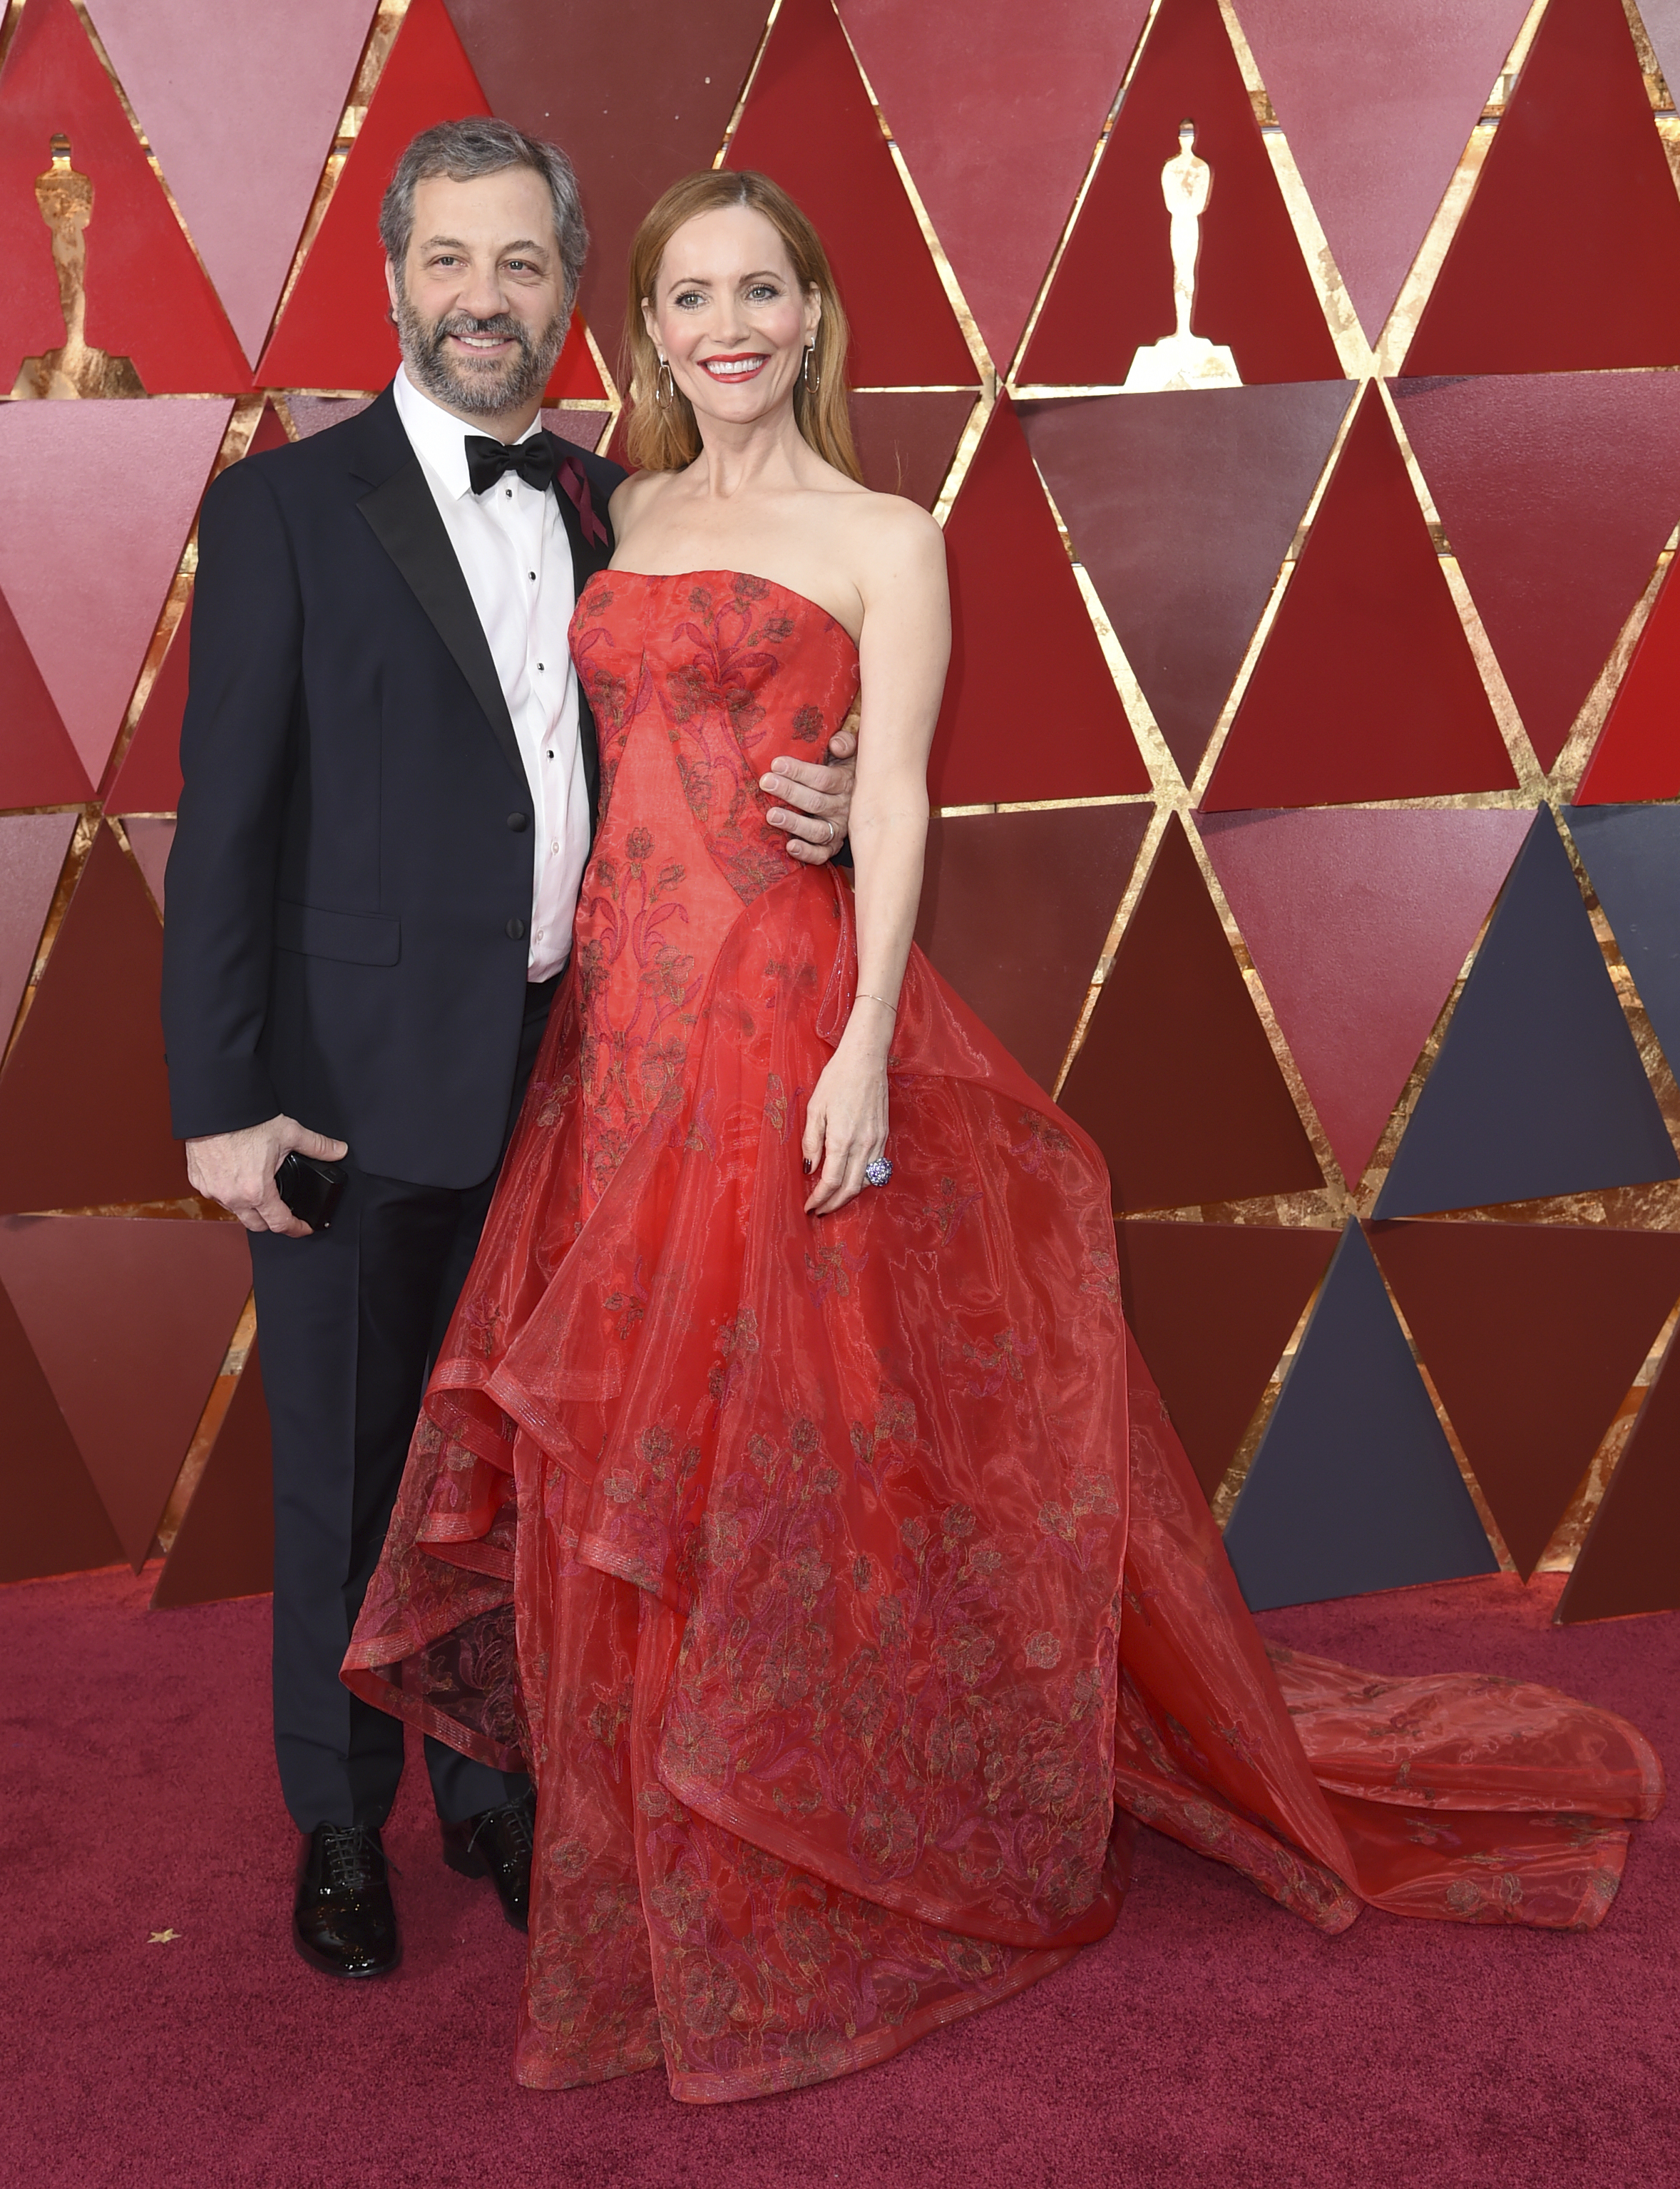 "<div class=""meta image-caption""><div class=""origin-logo origin-image none""><span>none</span></div><span class=""caption-text"">Judd Apatow, left, and Leslie Mann arrive at the Oscars on Sunday, March 4, 2018, at the Dolby Theatre in Los Angeles. (Richard Shotwell/Invision/AP)</span></div>"